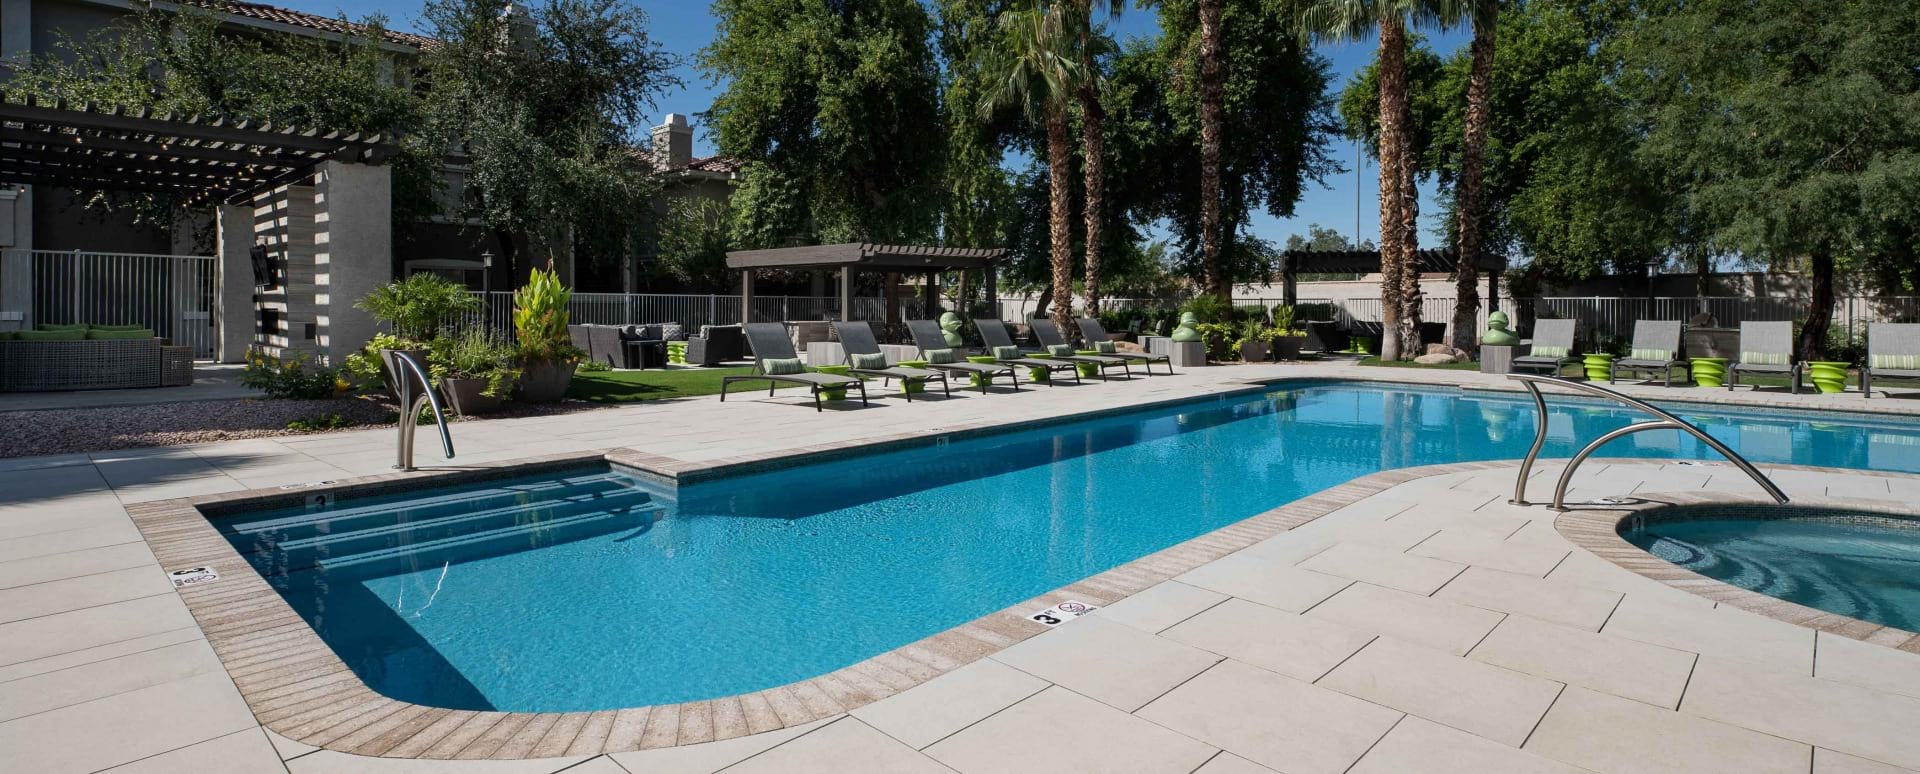 Newly Renovated Pools and Sun Deck